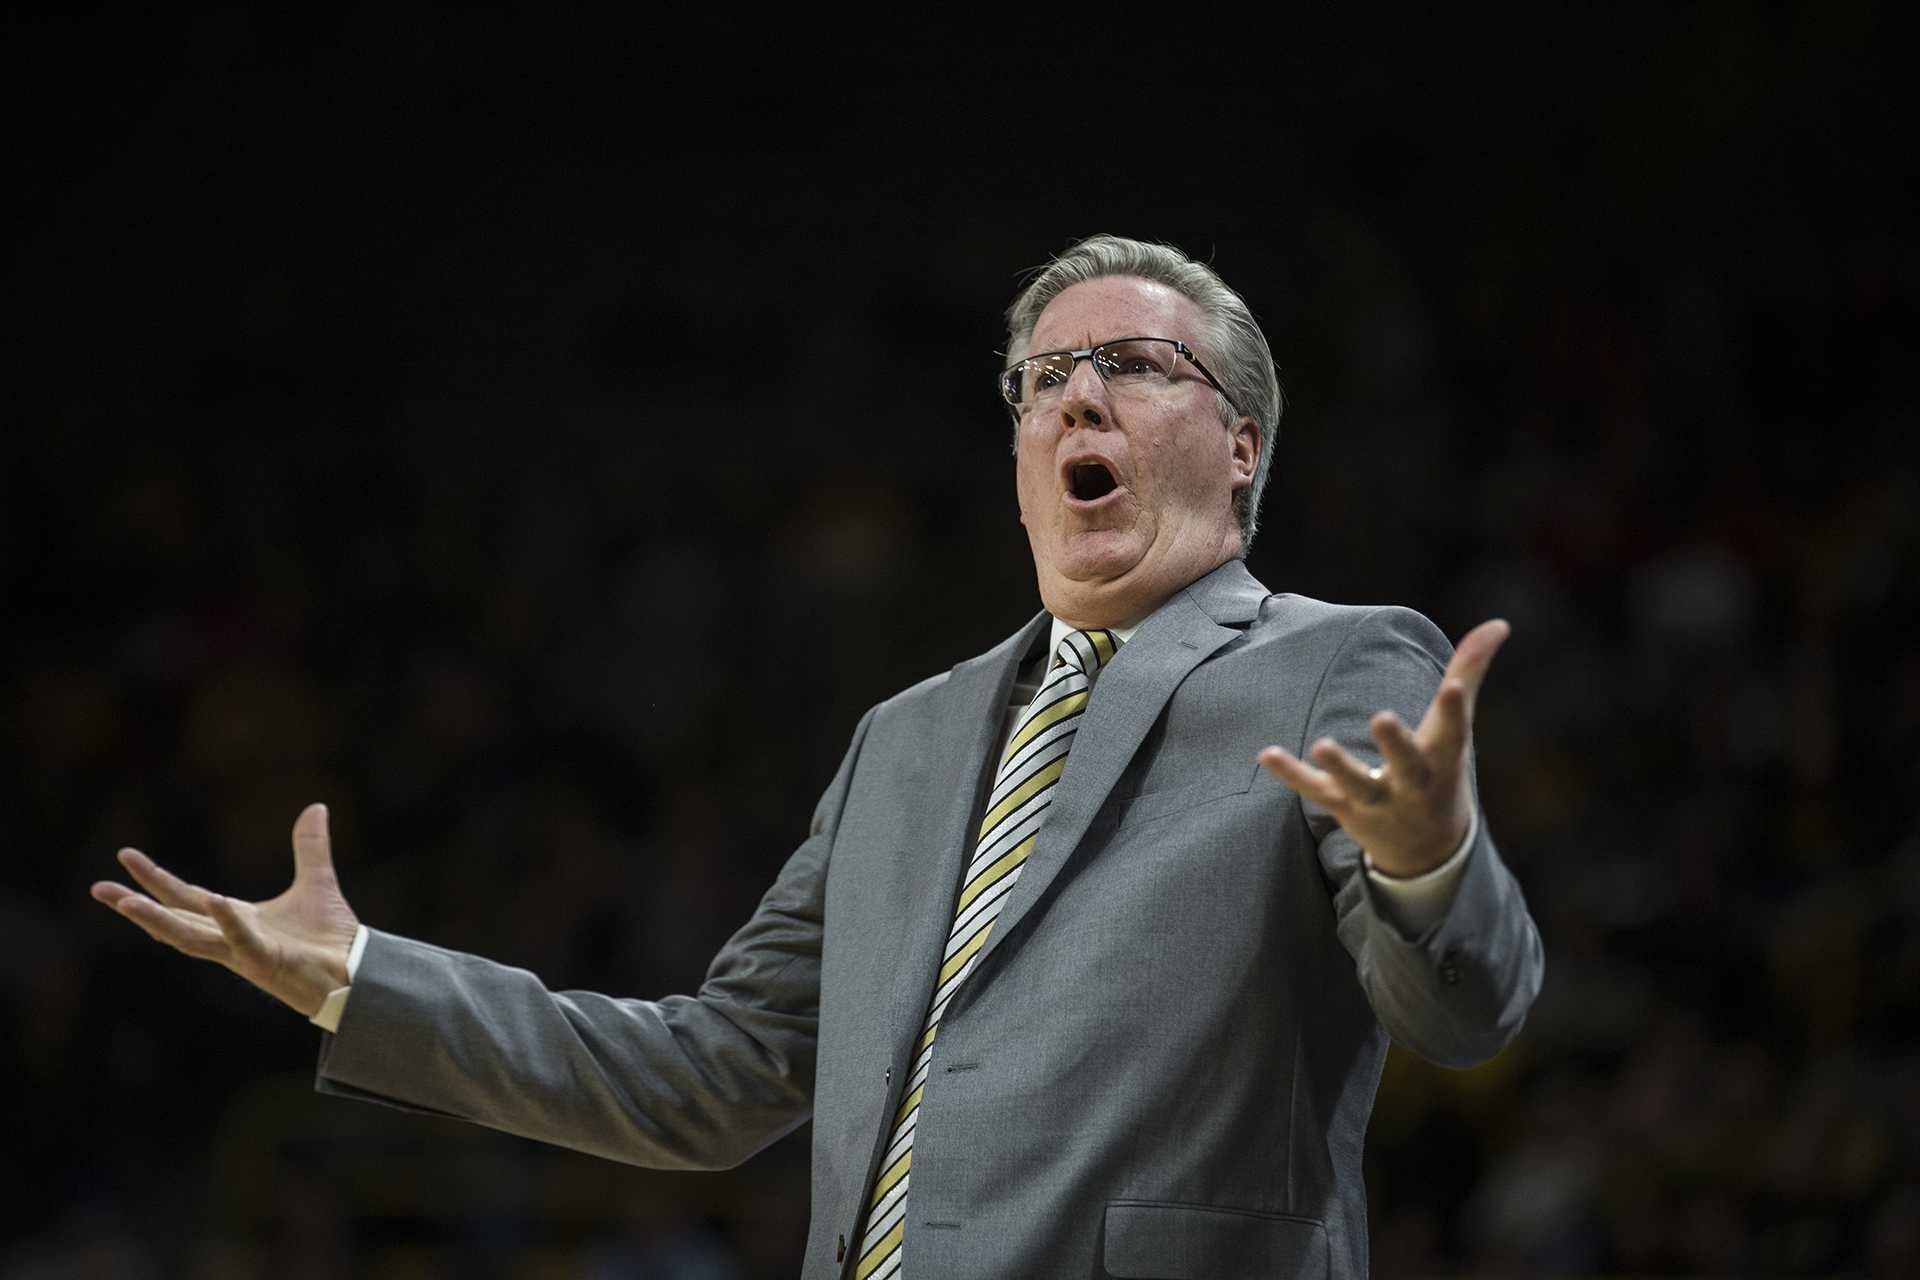 Iowa head coach Fran McCaffery reacts to a call by the referee during the NCAA basketball game between Iowa and Michigan at Carver-Hawkeye Arena on Tuesday, Jan. 2, 2017. The Hawkeyes fell to the Wolverines, 75-68. (Ben Allan Smith/The Daily Iowan)